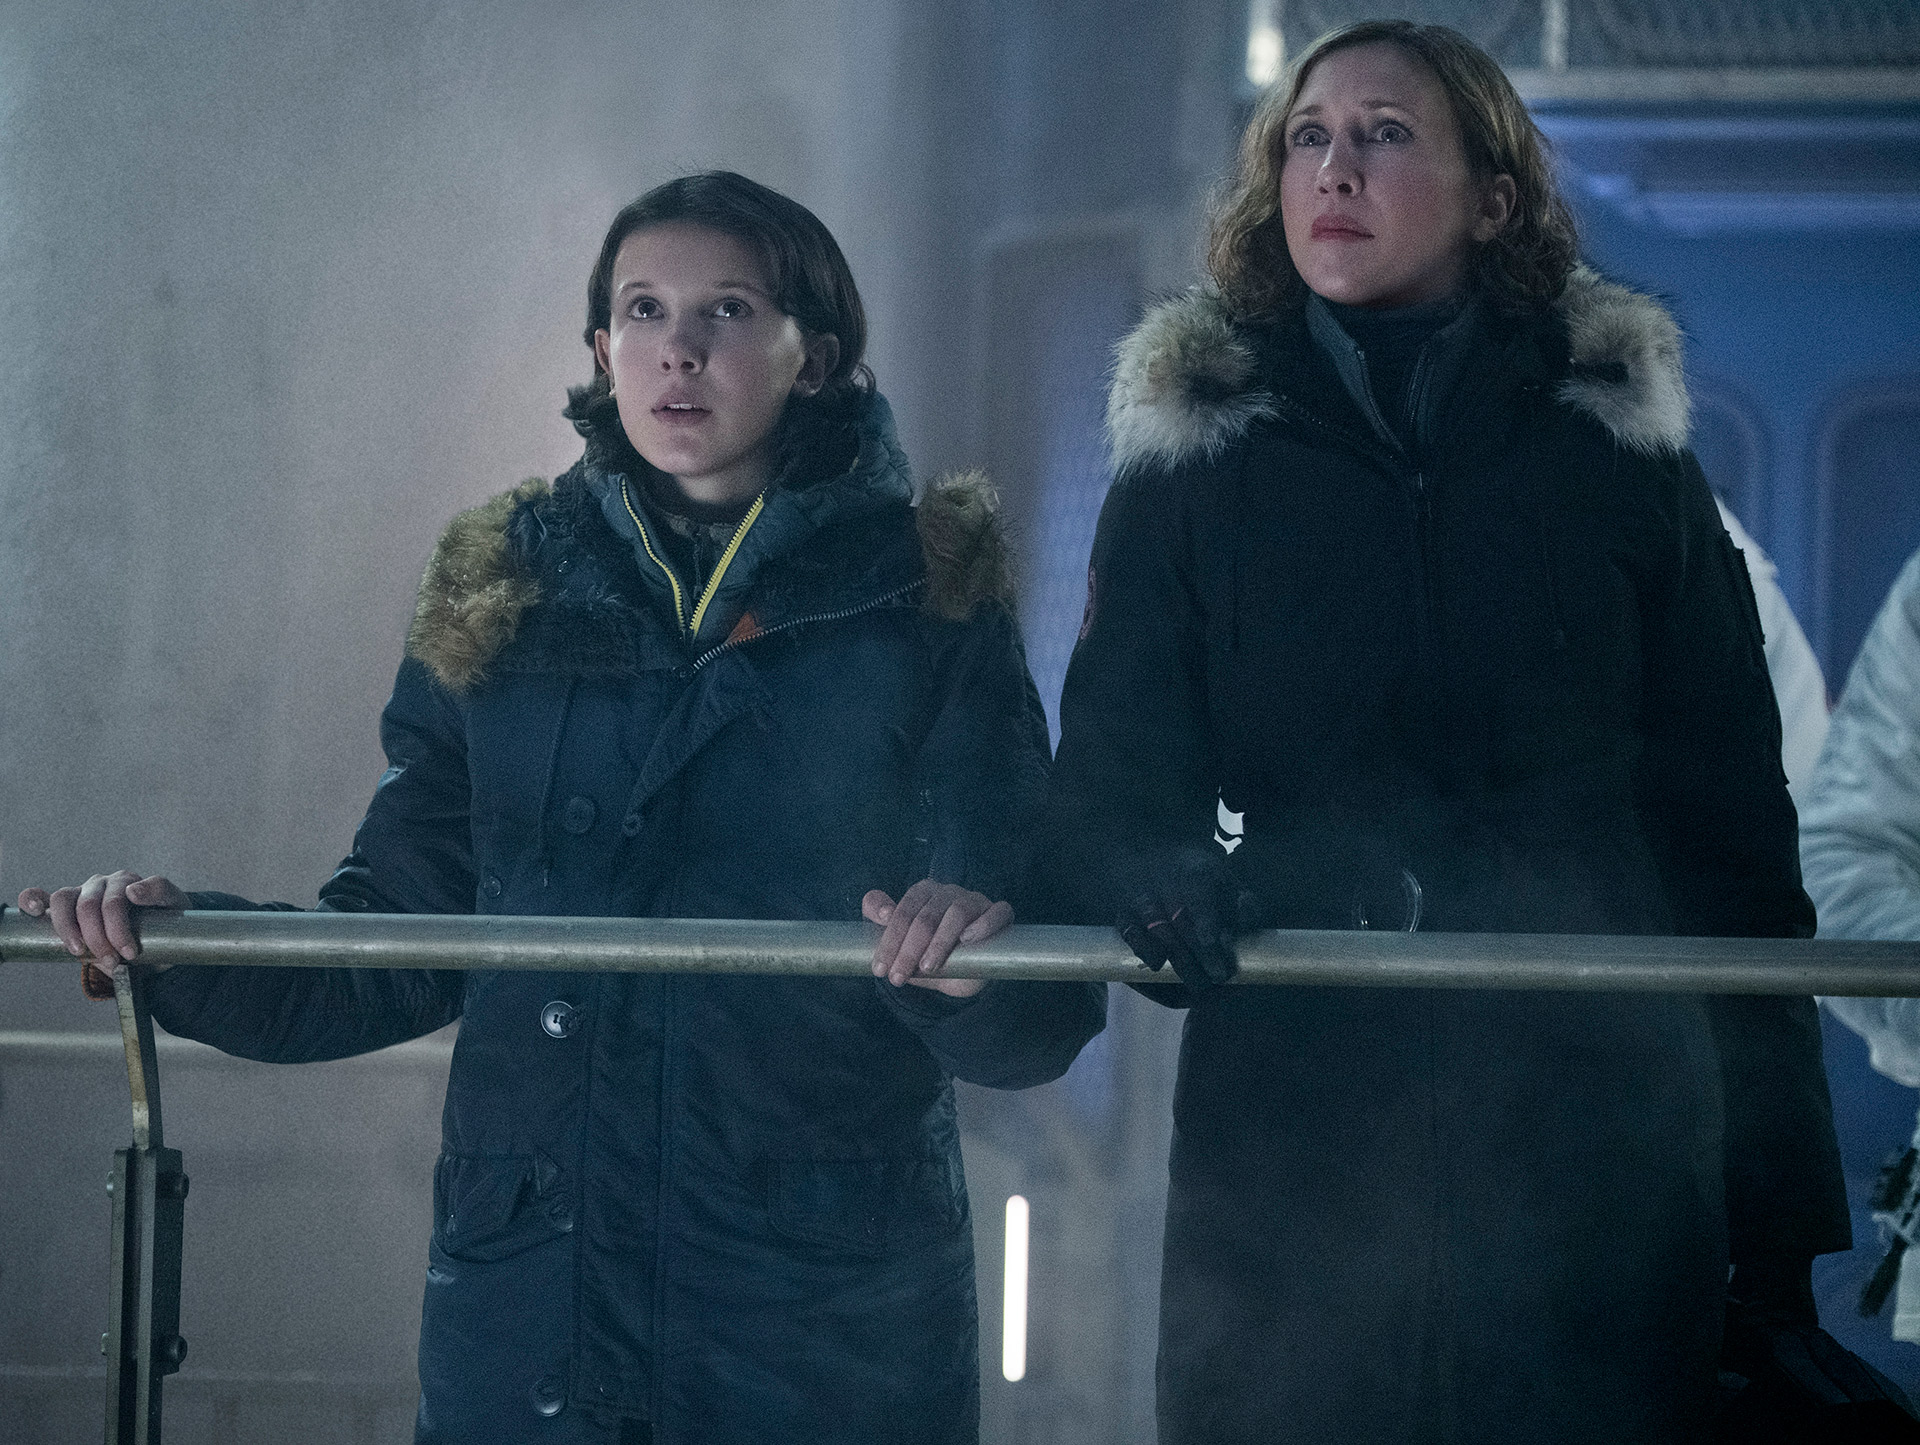 Vera Farmiga and Millie Bobby Brown in Godzilla II: King of The Monsters. Photo: Warner Bros